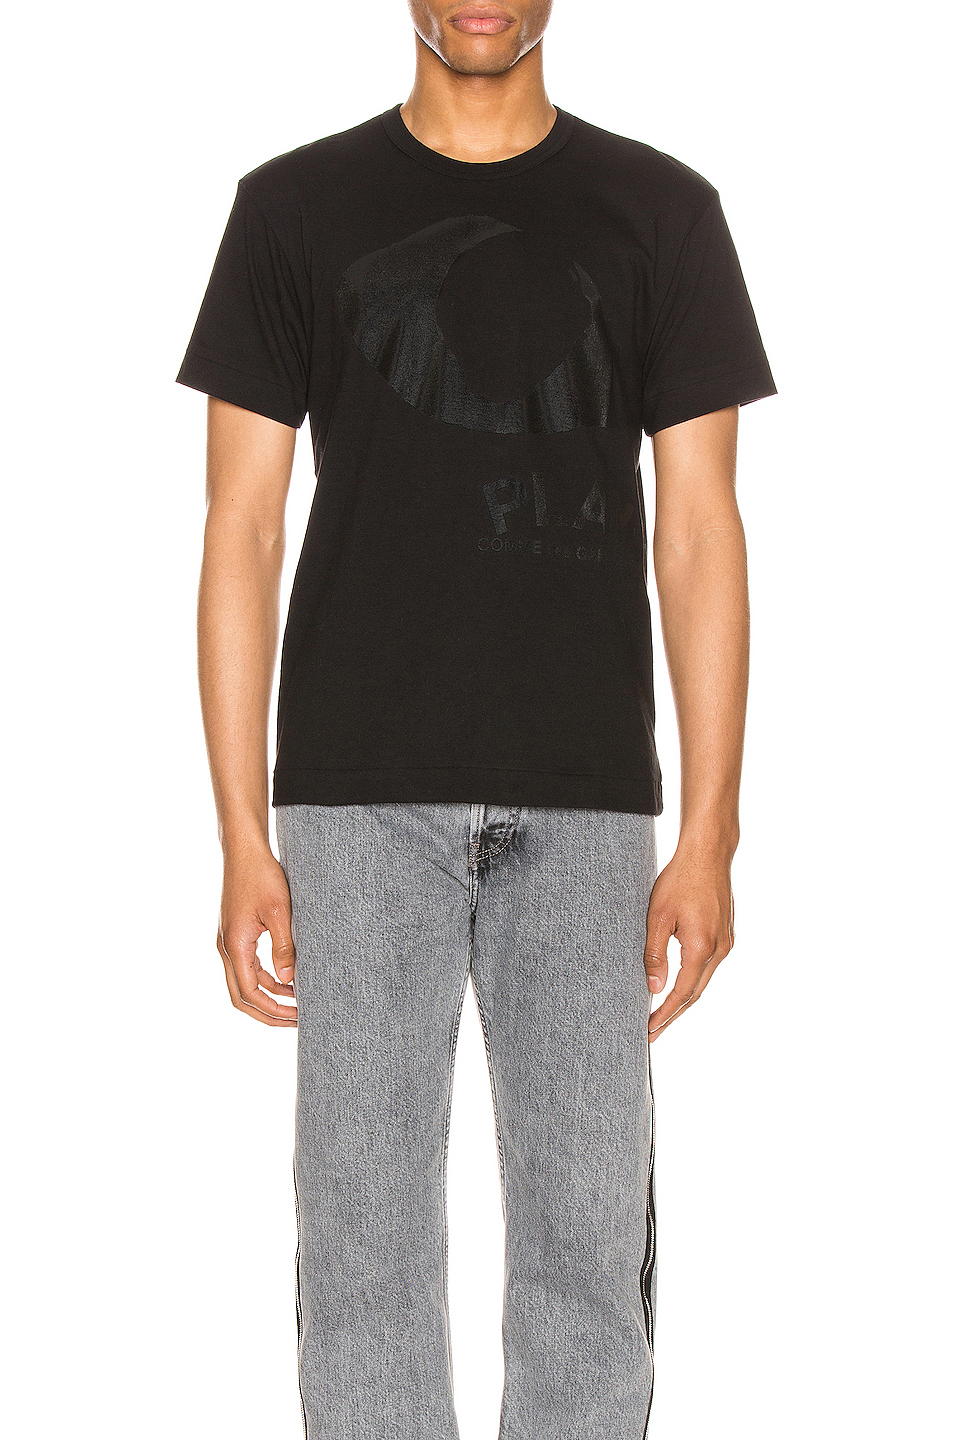 Comme Des Garcons PLAY Printed Eye Cotton Tee in Black